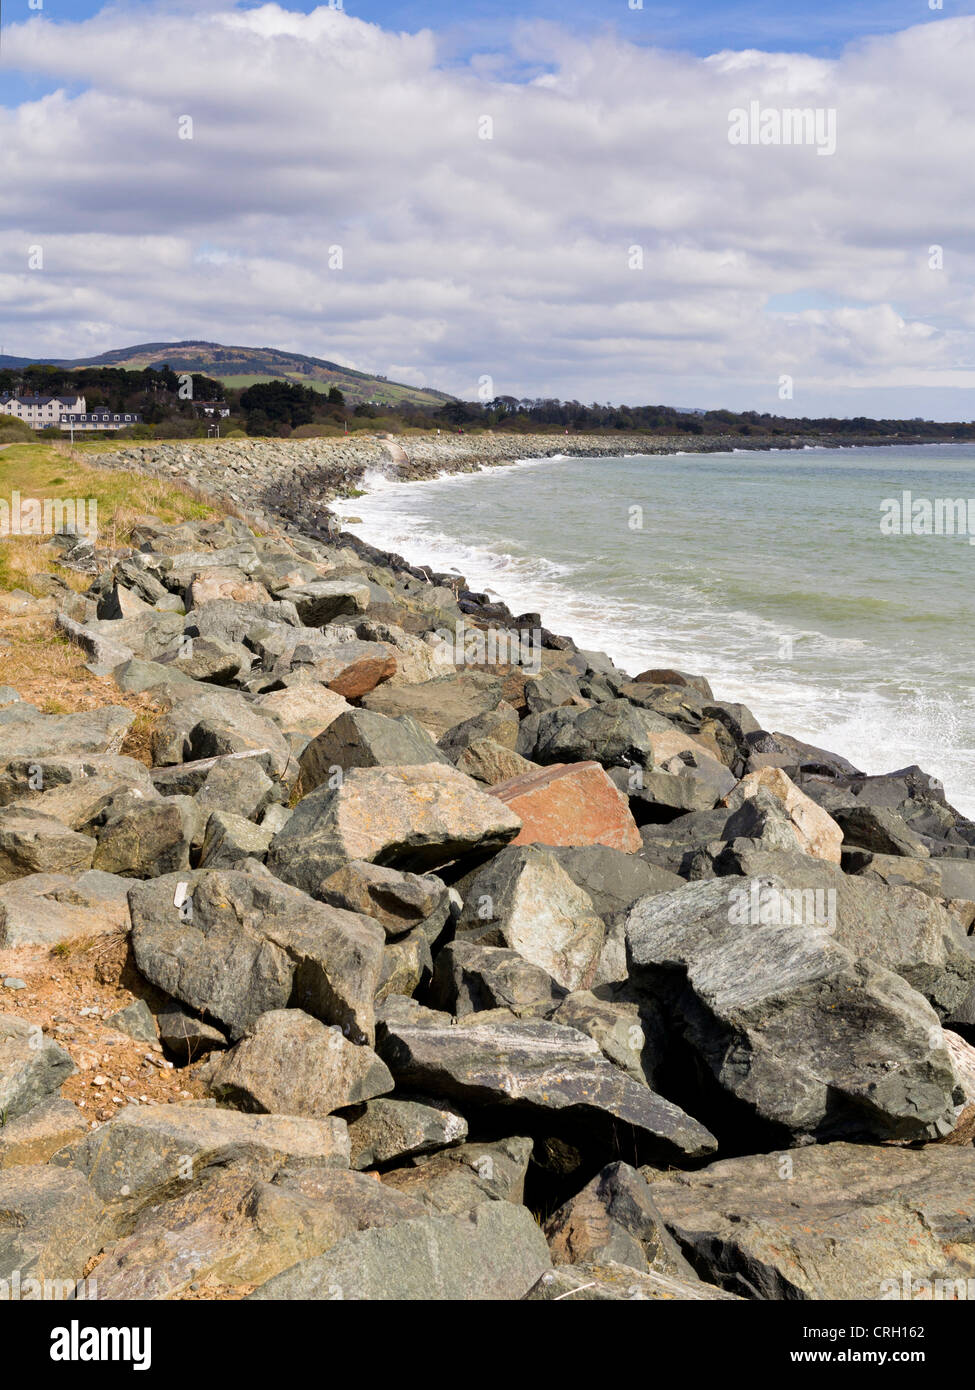 Irish beach with coastal protection in Arklow, County Wicklow, Ireland - Stock Image